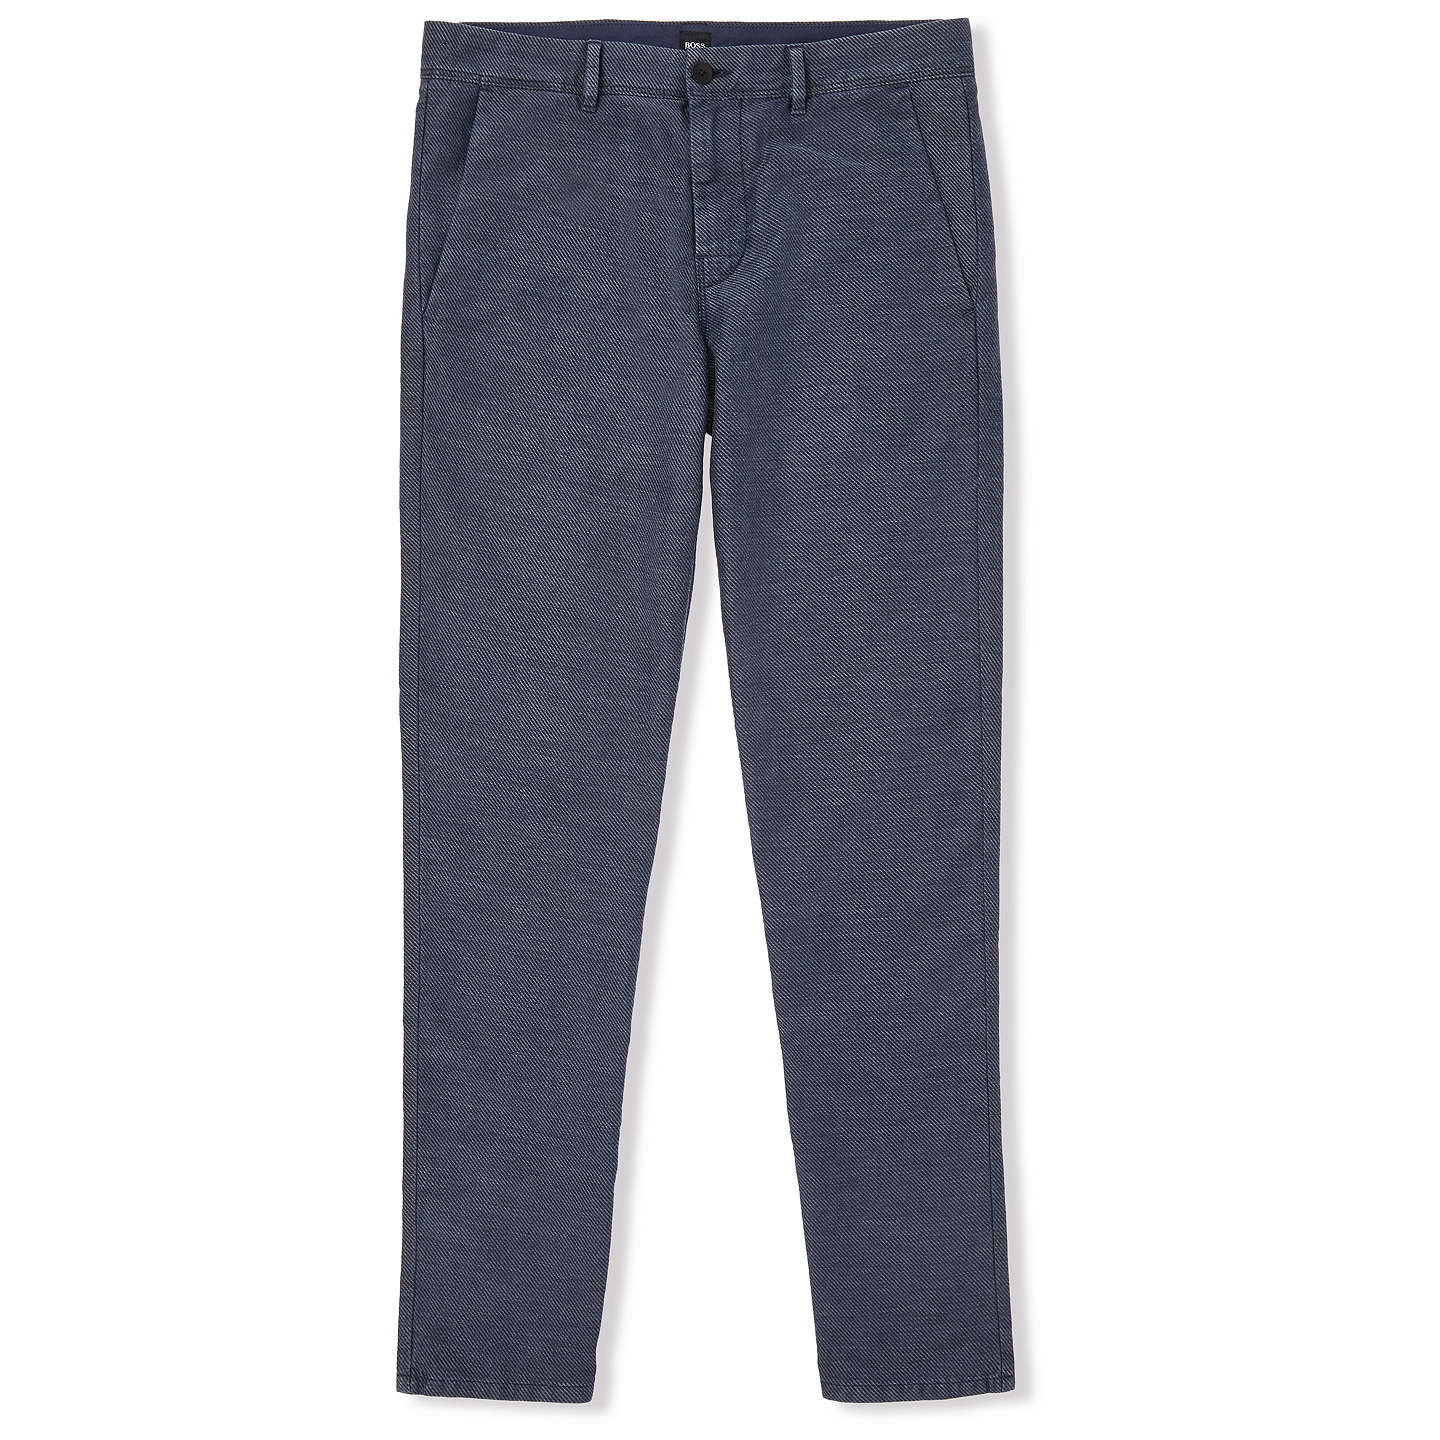 BuyBOSS Stapered Casual Trousers, Dark Blue, 30R Online at johnlewis.com